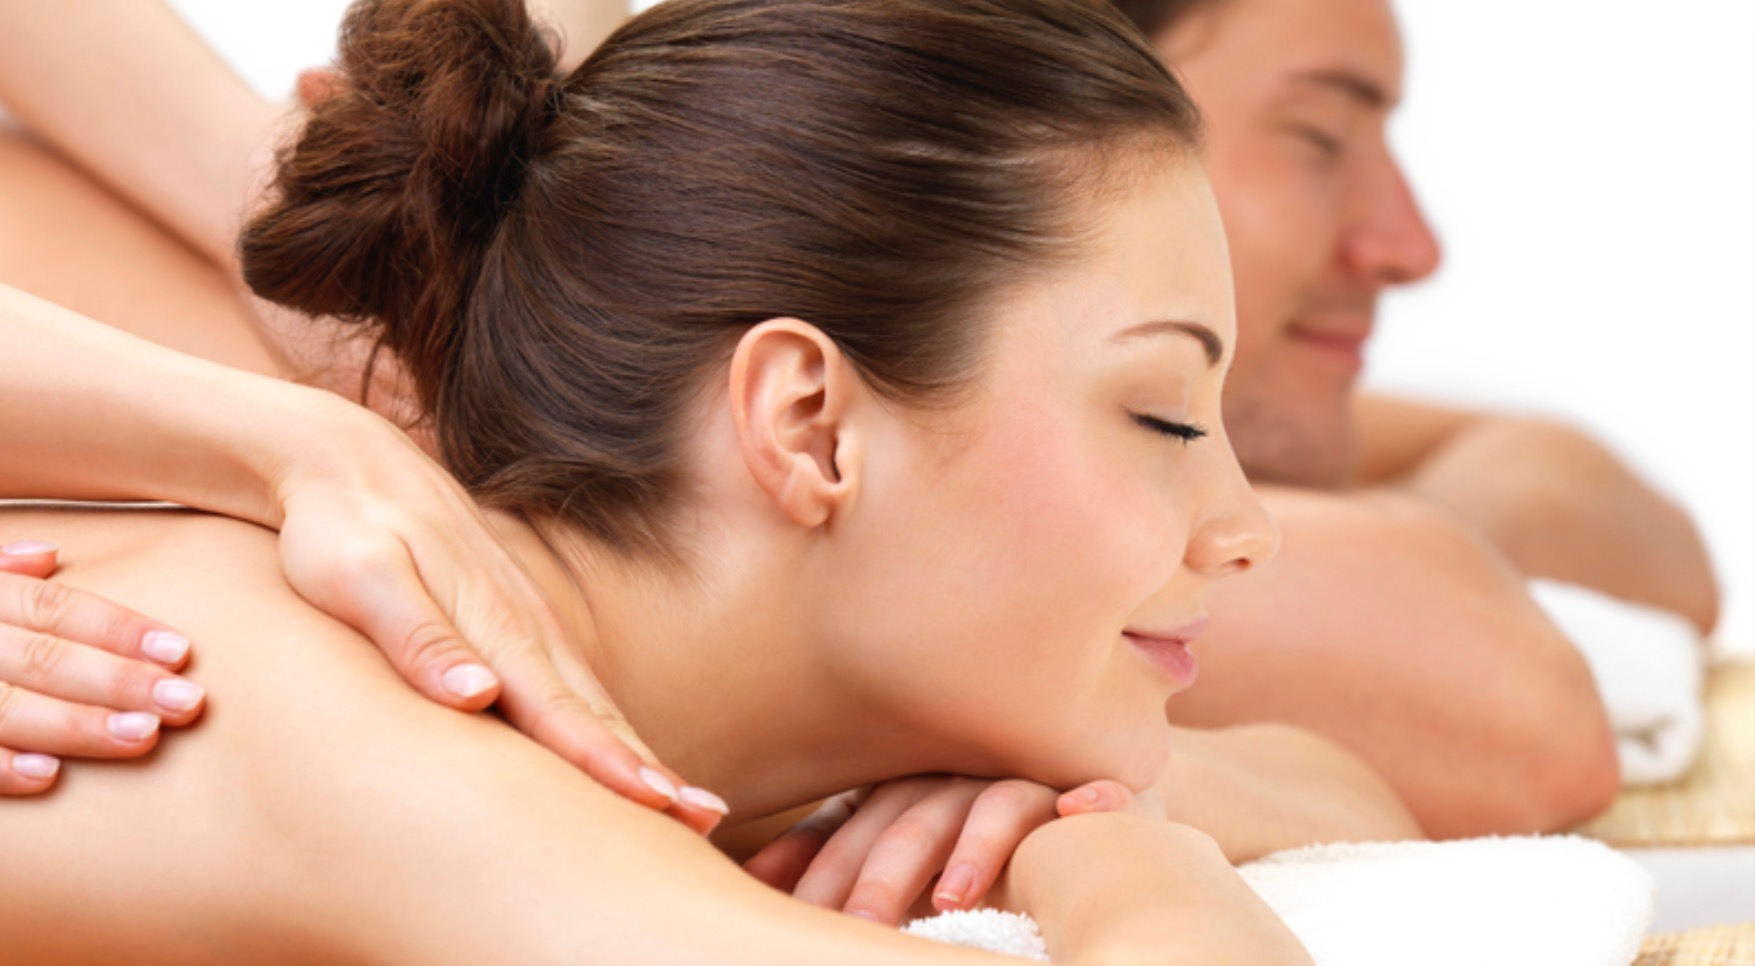 Relaxing couple massages